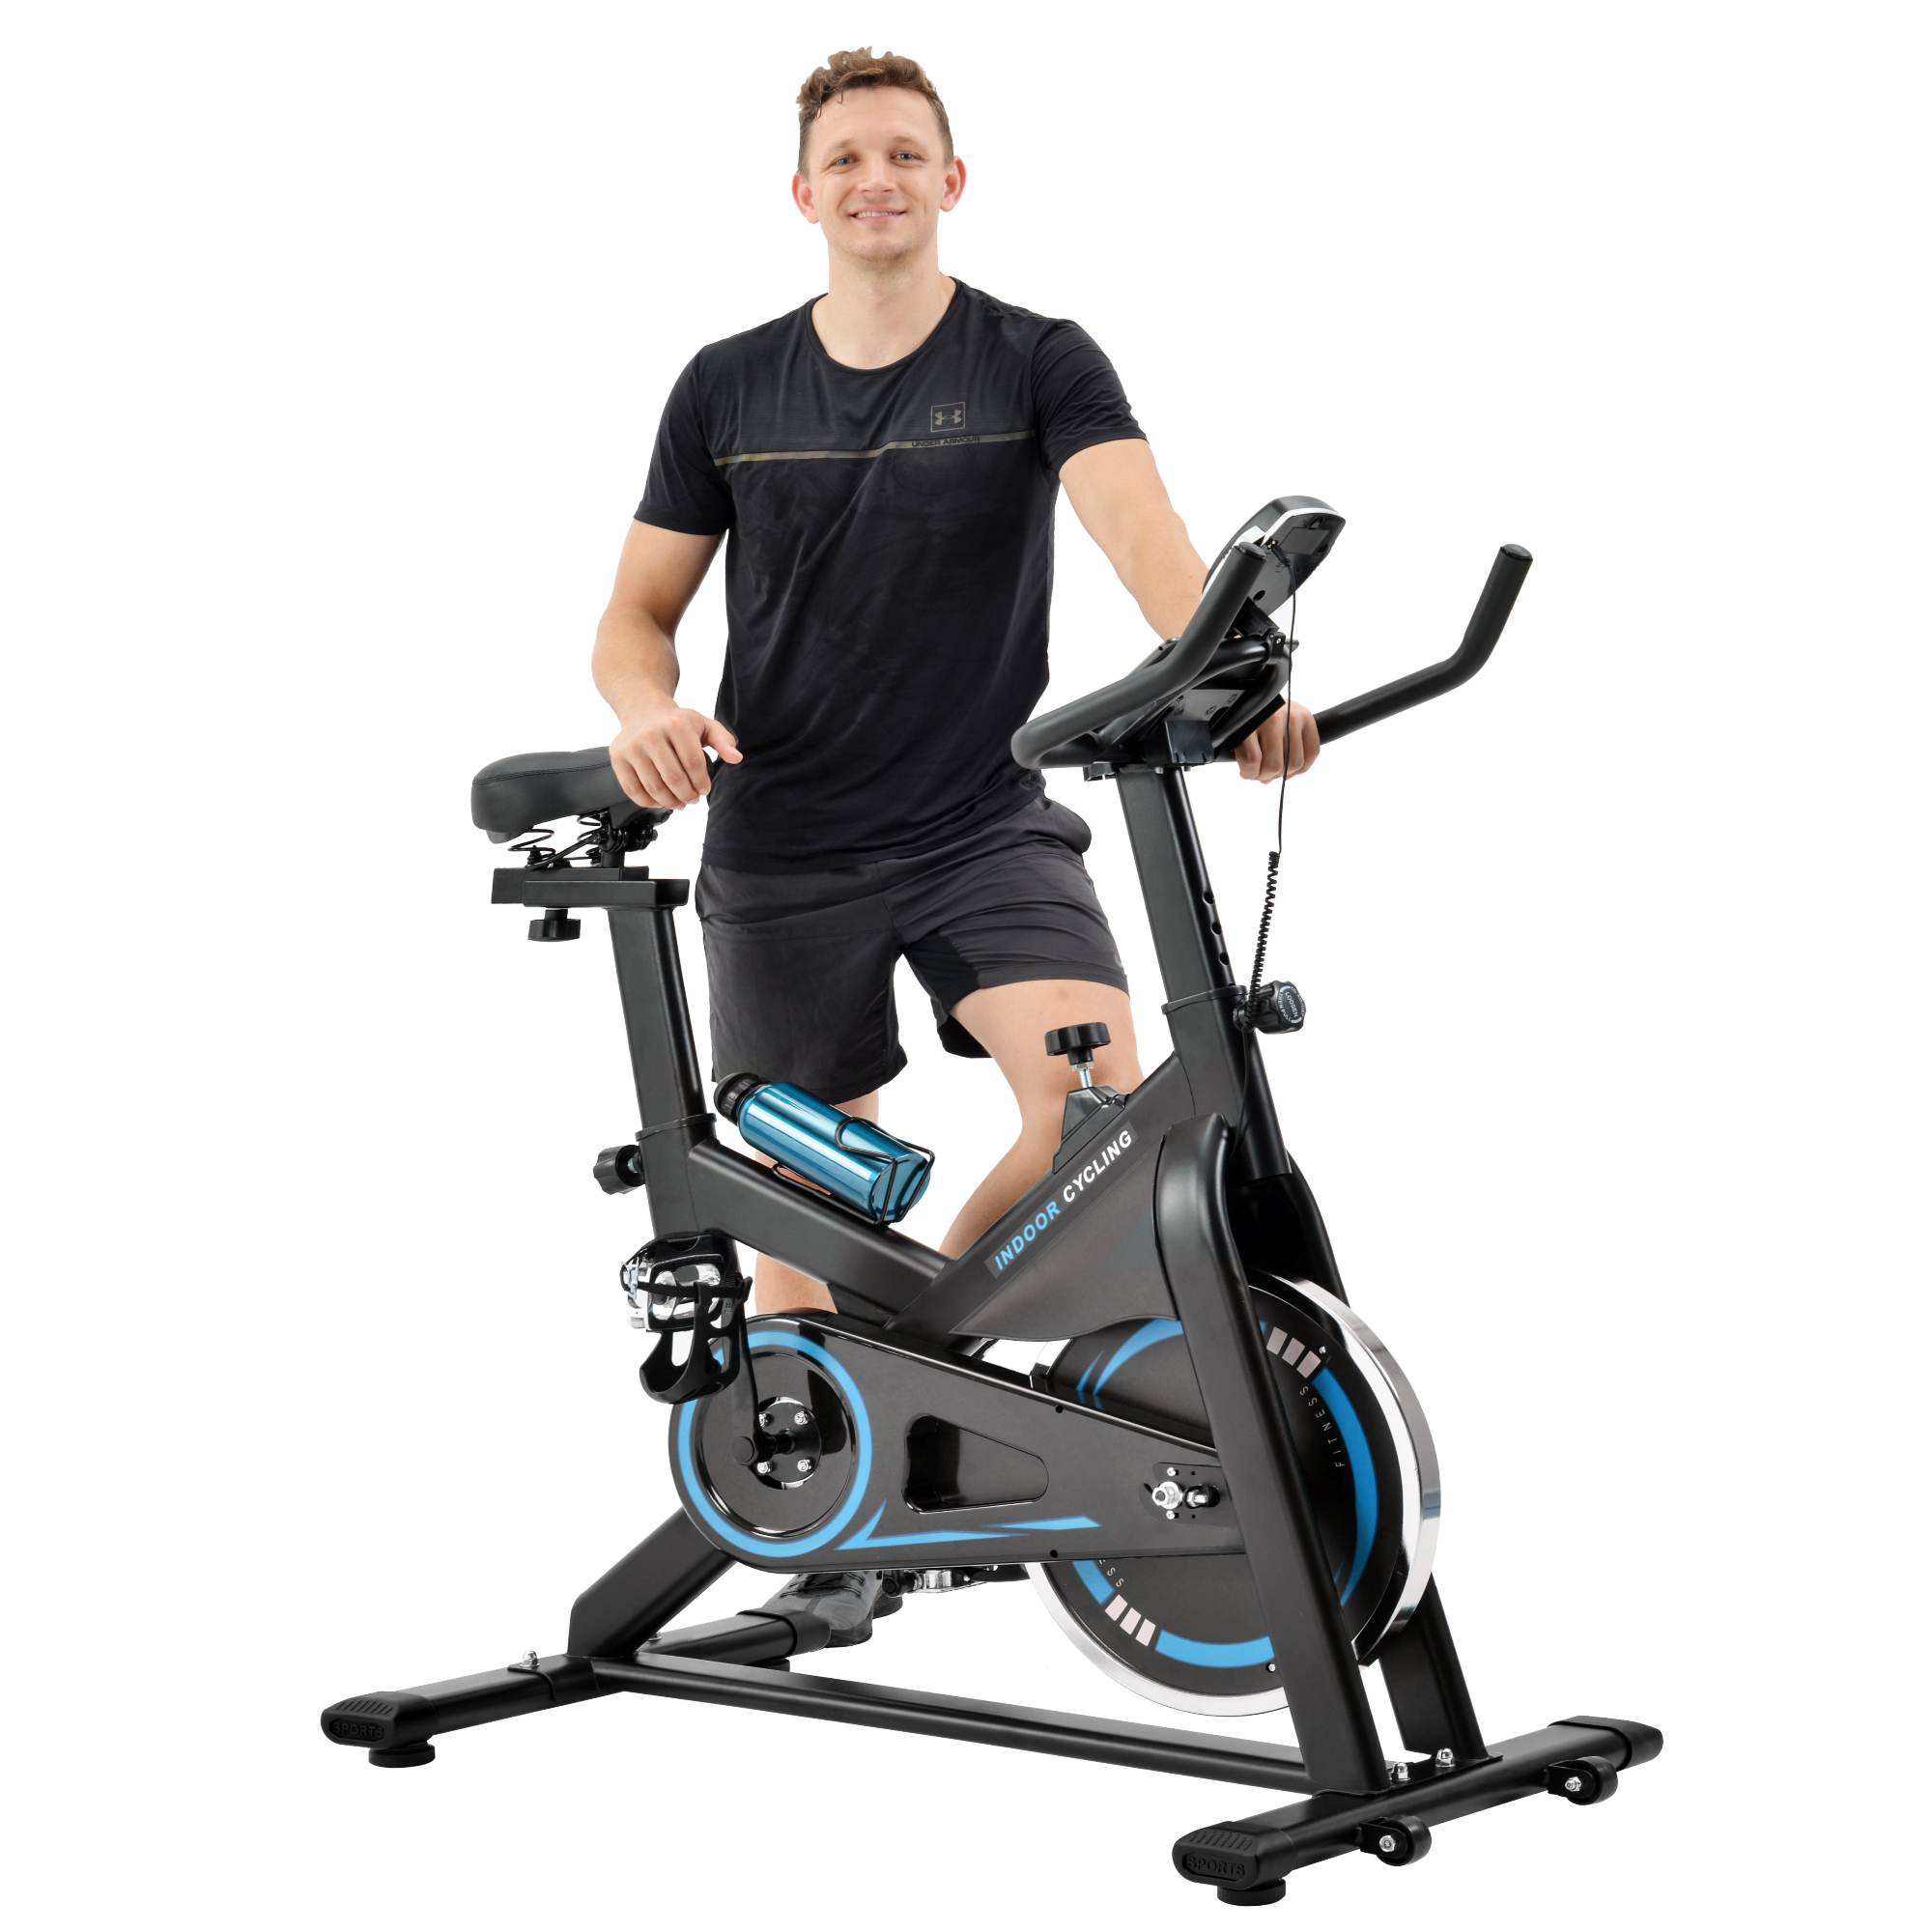 [US Direct] 【Video provided】Indoor Cycling Bike Trainer with Comfortable Seat Cushion, Exercise Bike with Belt Drive System and LCD Monitor for Home Workout,with Water Bottle Holder and Soft Saddle